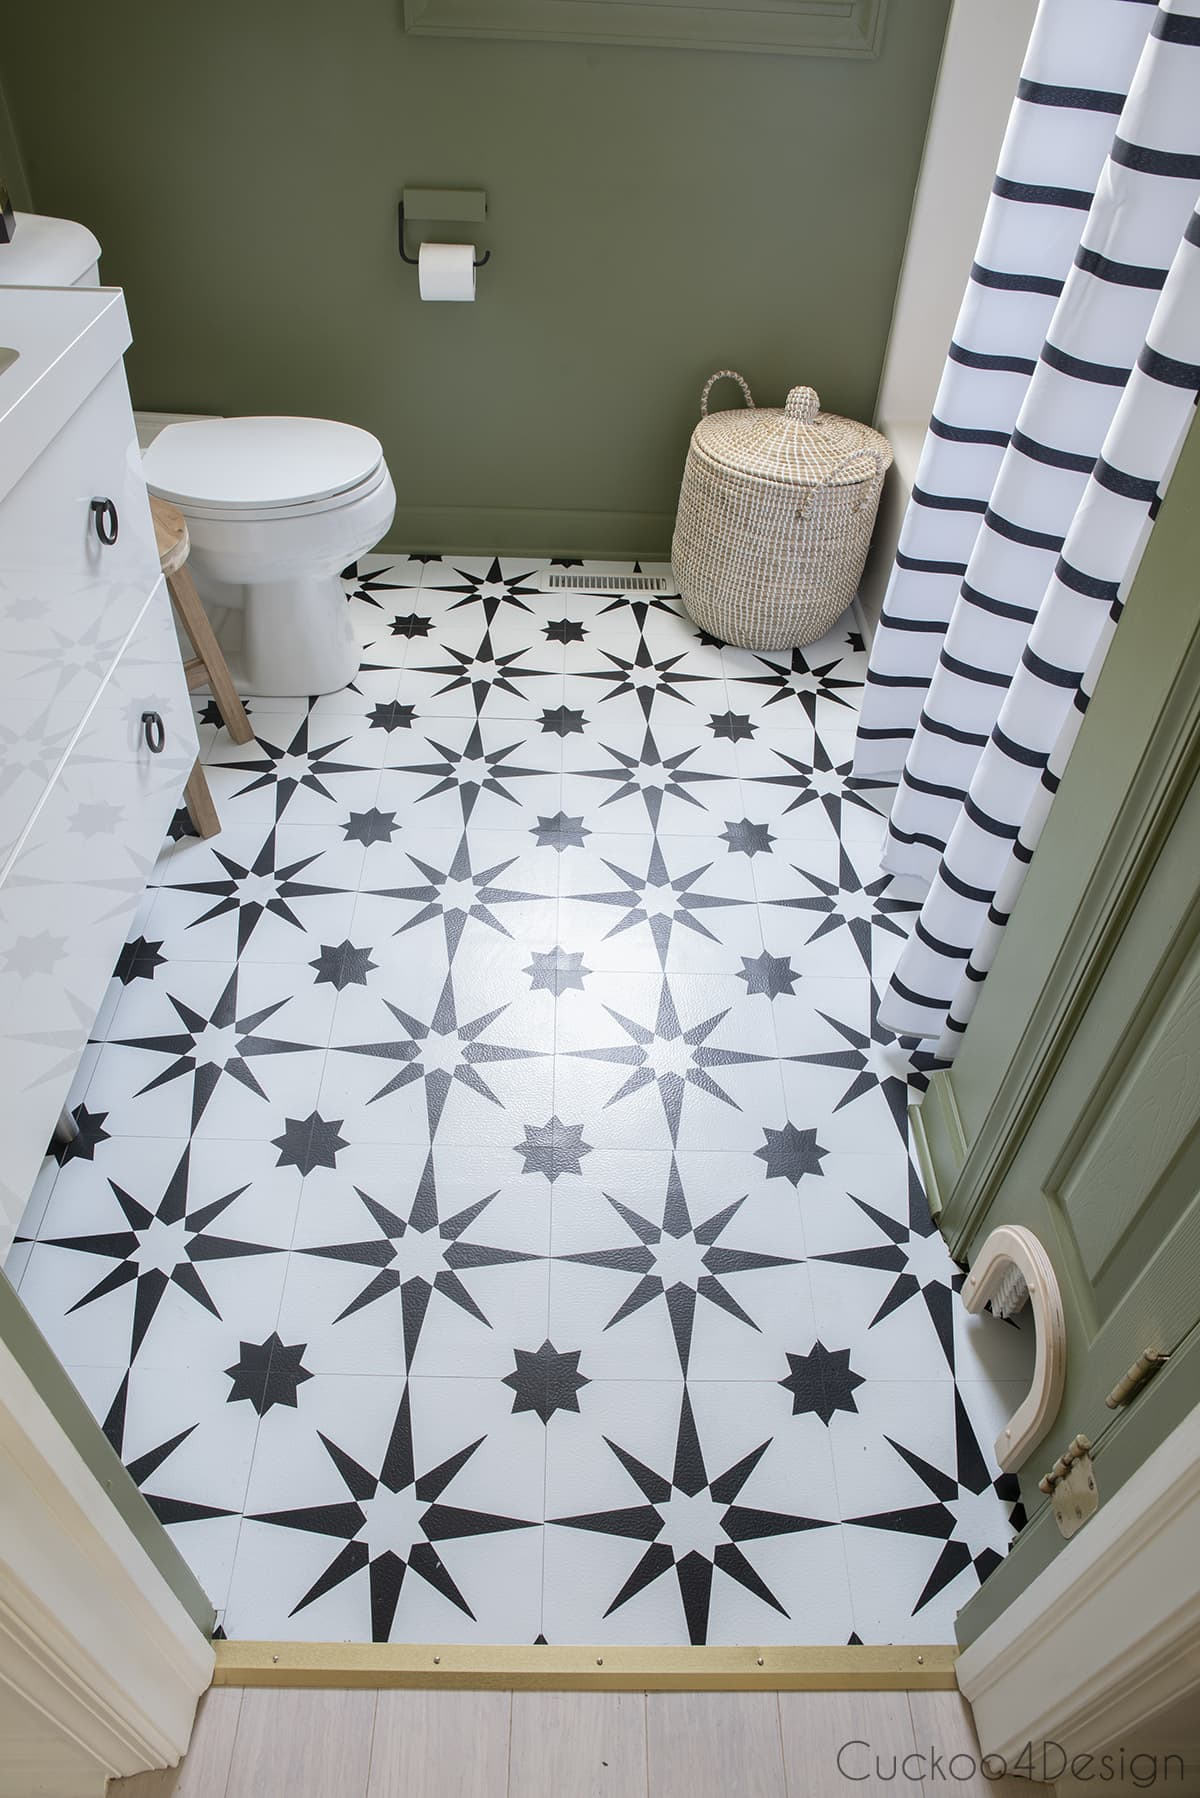 front view of black and white peel and stick floor tile